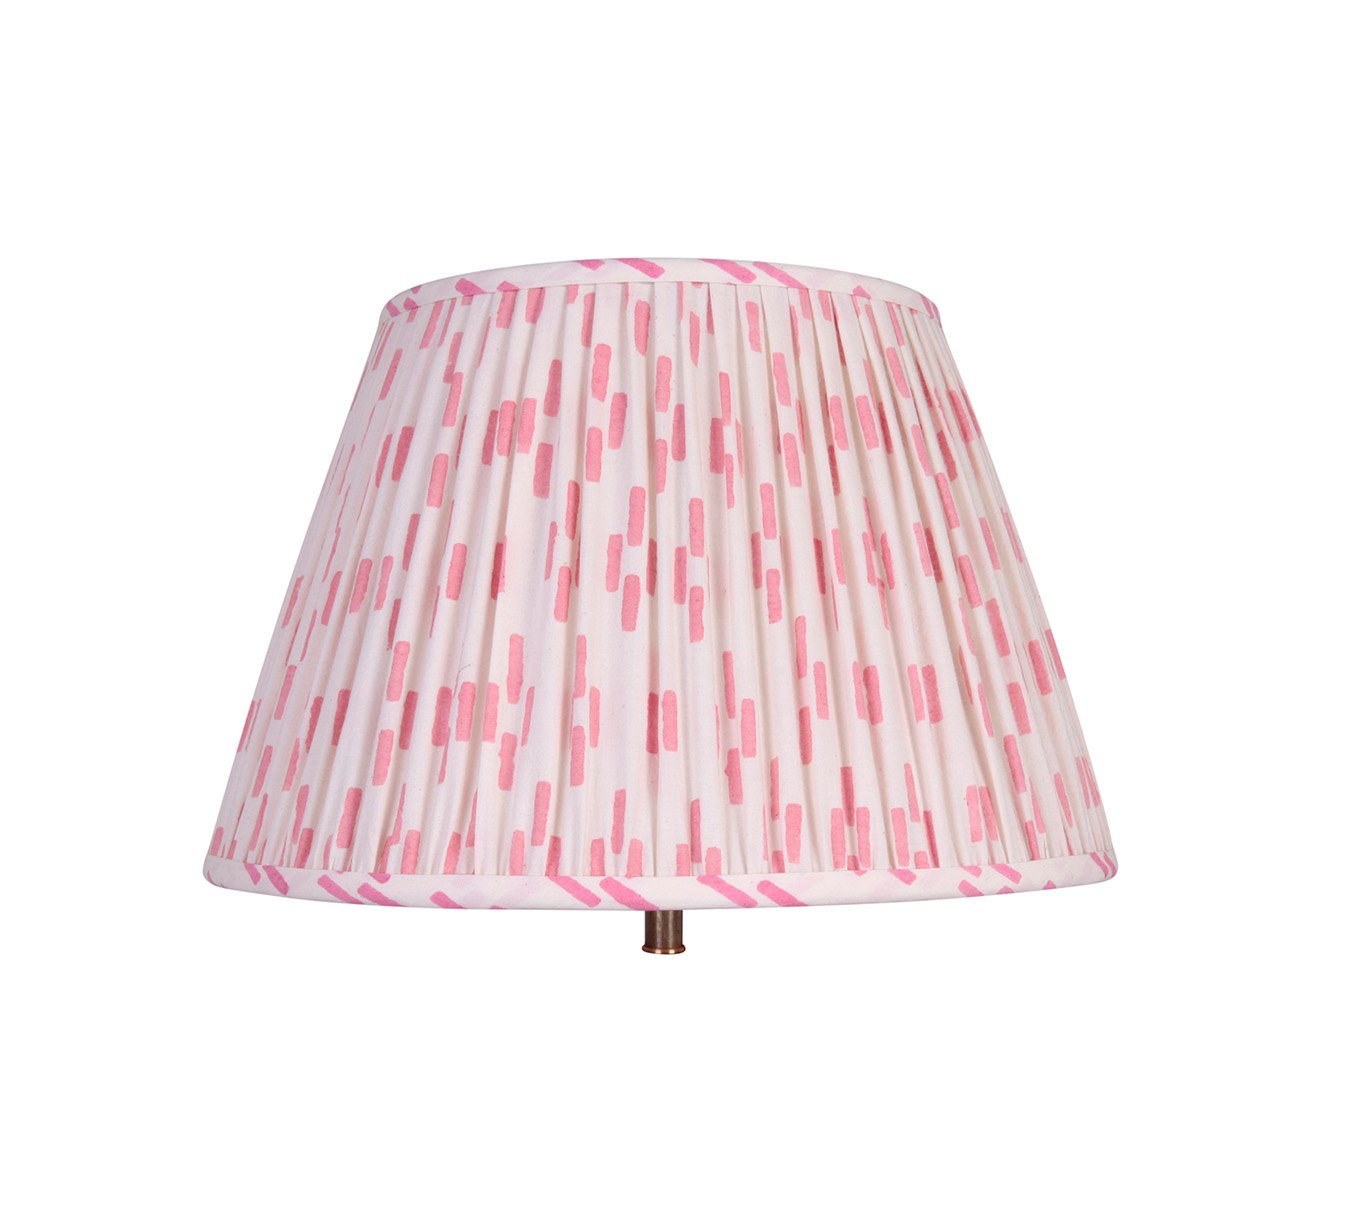 Lampshade - Pleated - Dash - Pink - 14""